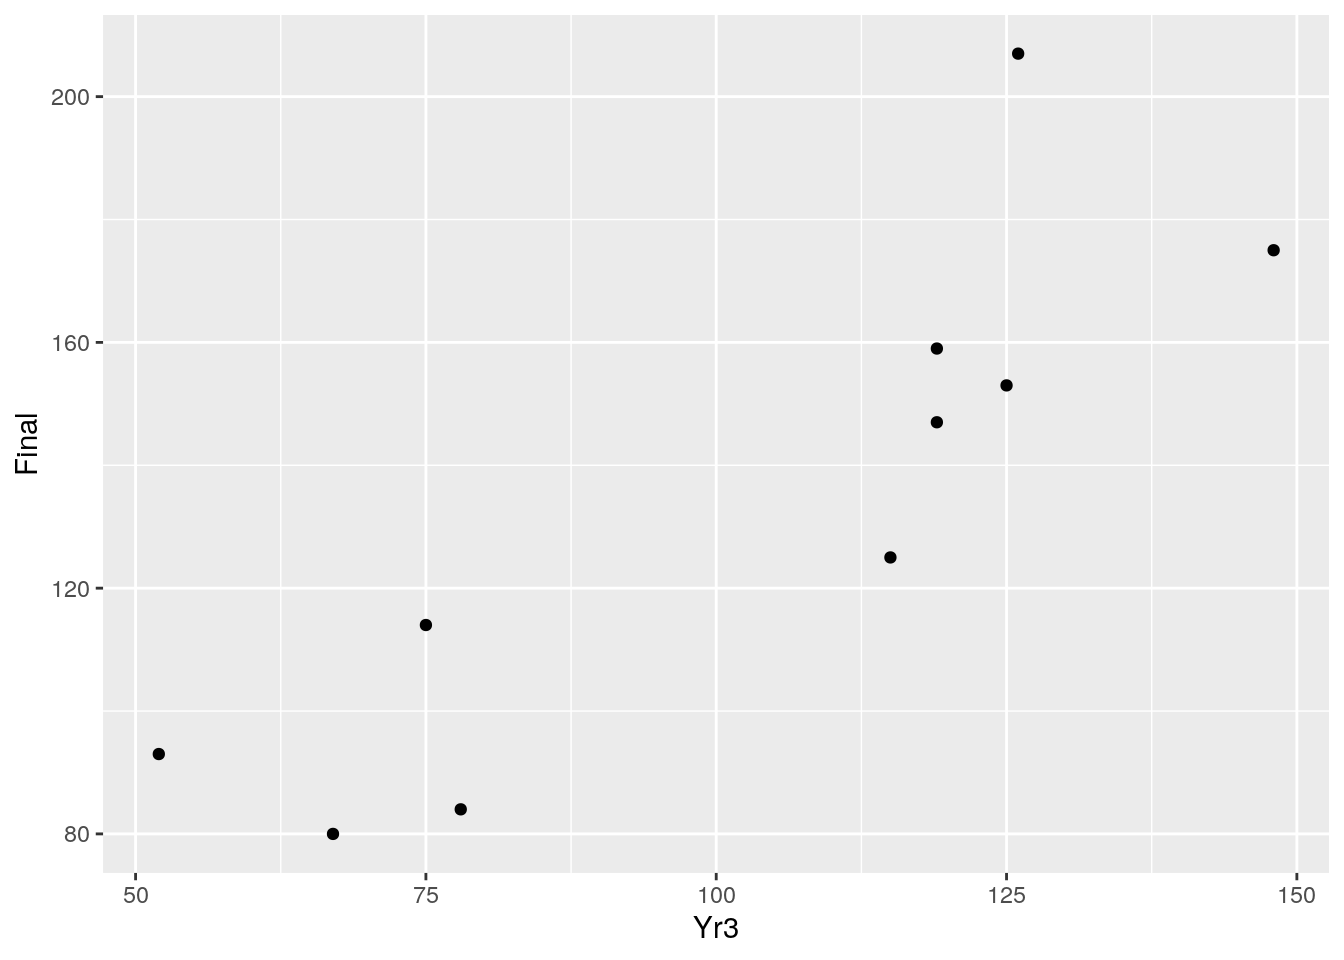 Basic scatter plot of ten datapoints